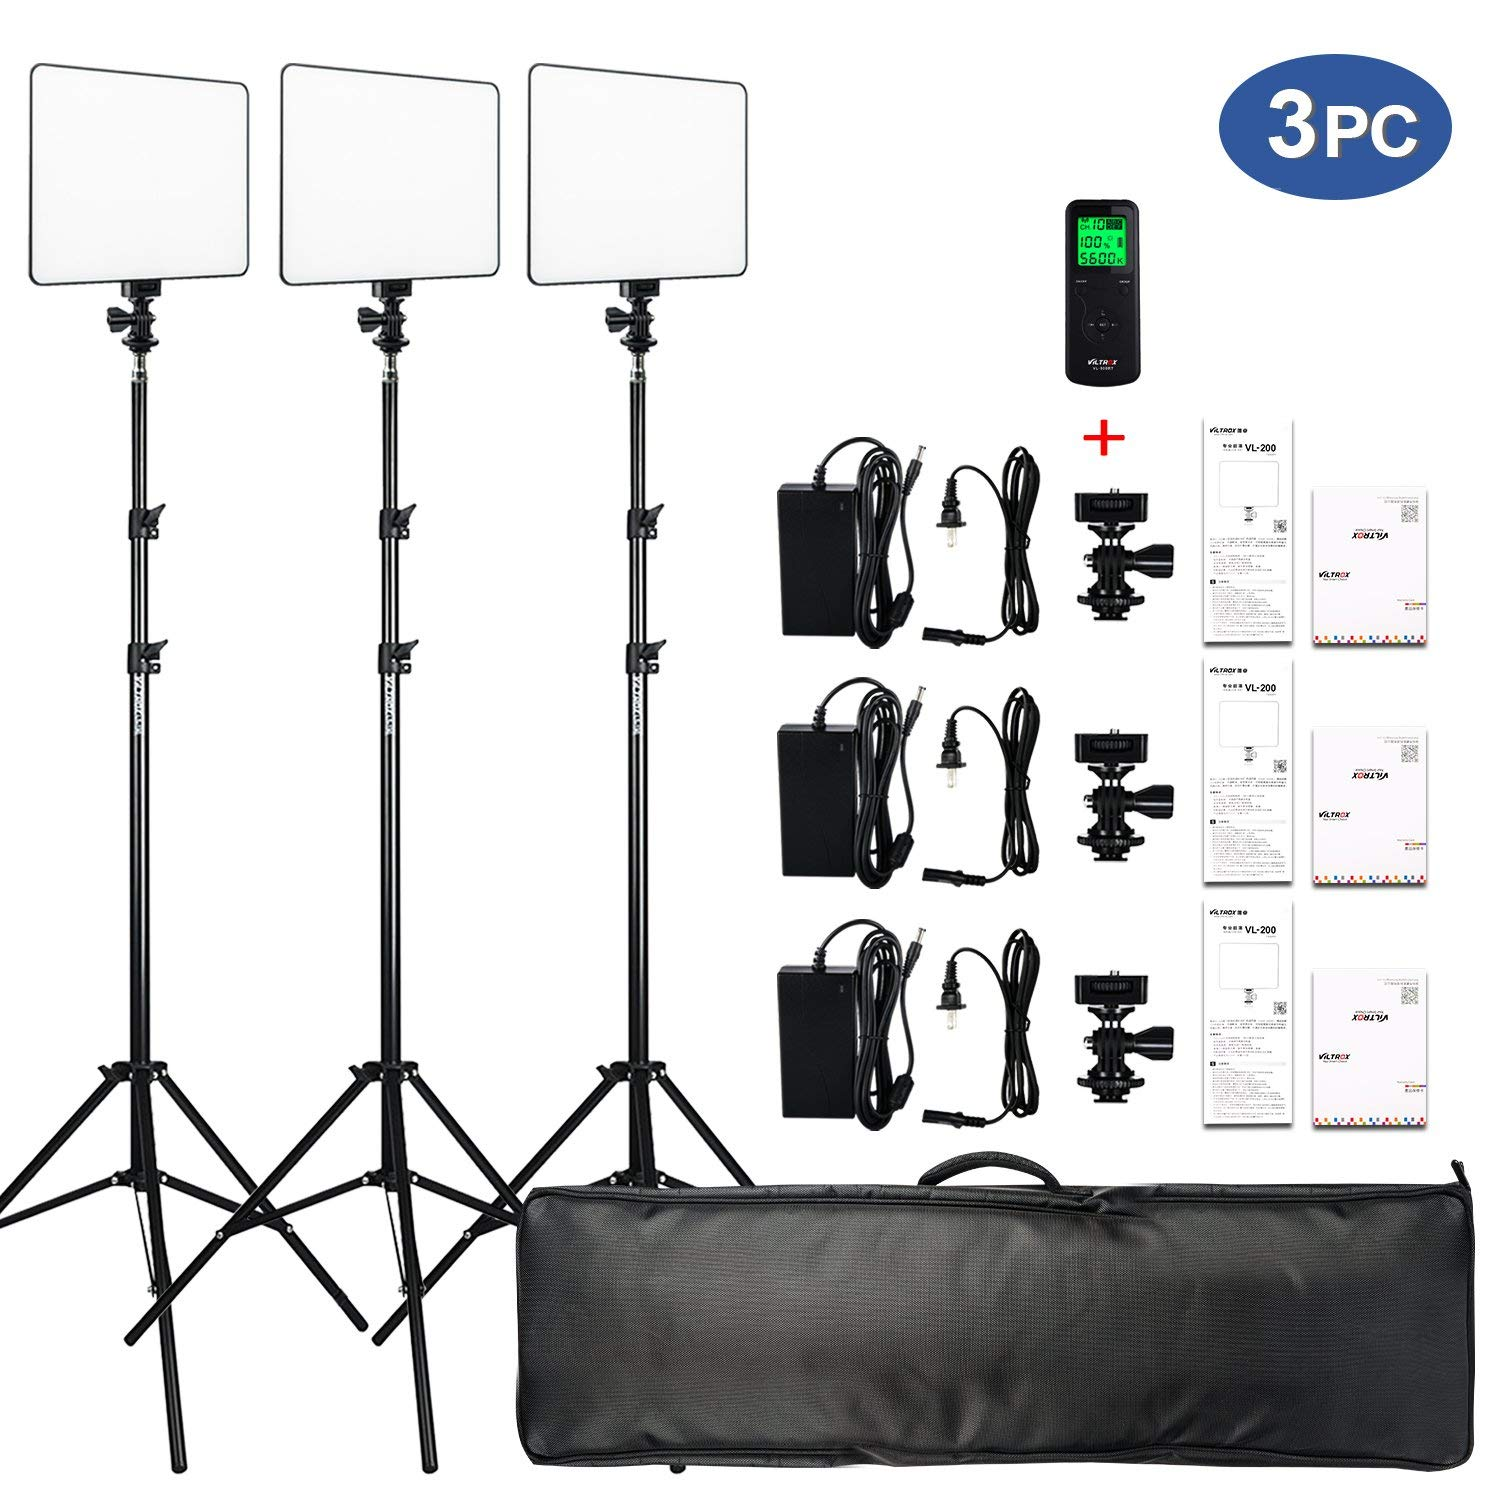 VILTROX VL-200 3 Packs Ultra Thin Dimmable Bi-color LED Video Light Panel Lighting Kit includes: 3300K-5600K CRI 95 LED Light Panel with Hot Shoe Adapter/Light Stand/Remote Controller and AC adapter …